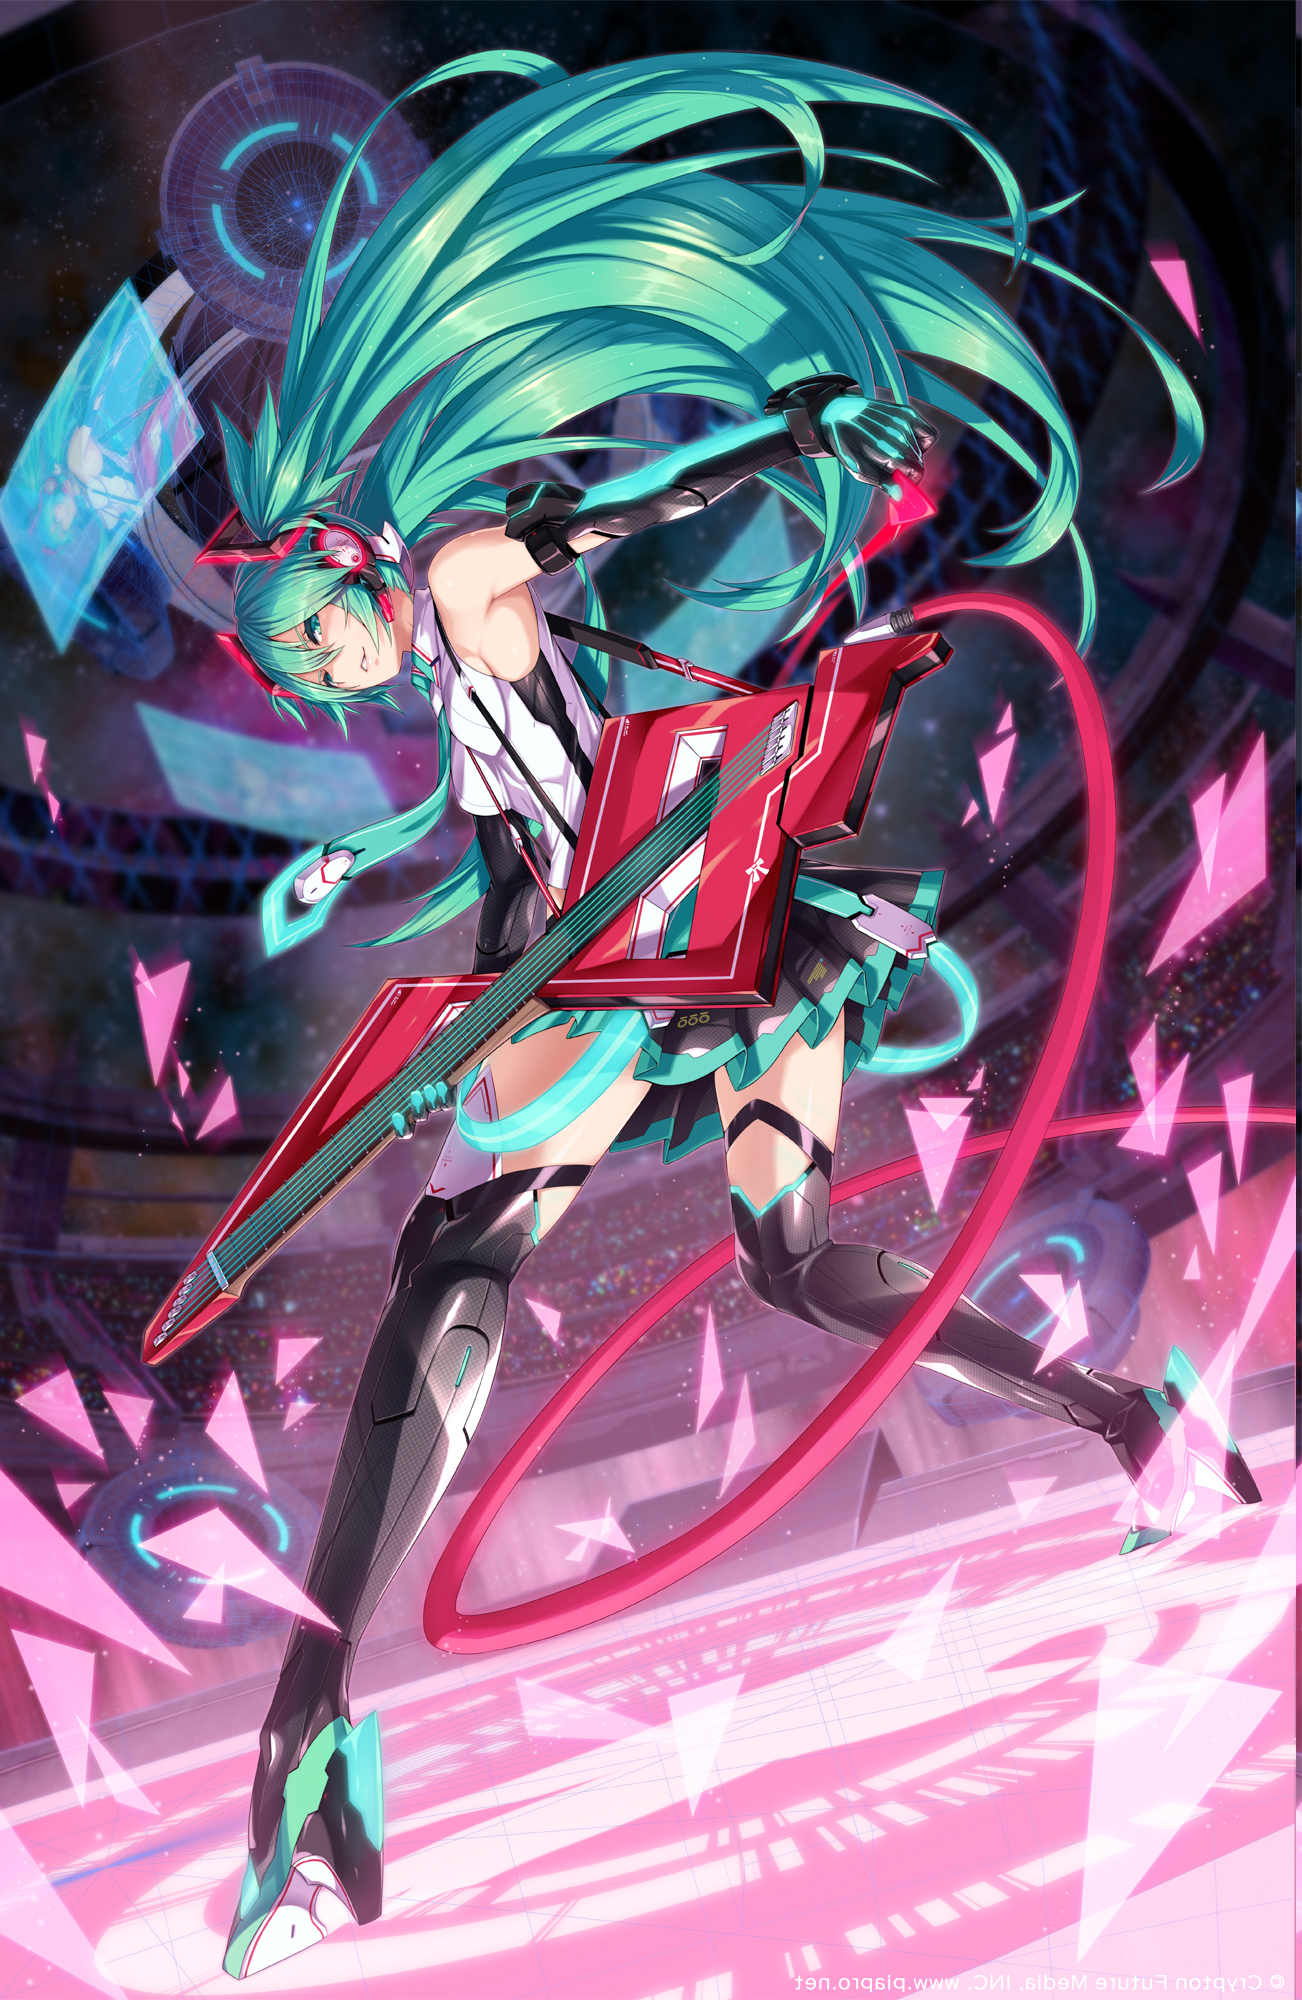 Funny Hd Animal Wallpapers Hatsune Miku Vocaloid Wallpapers Hd Desktop And Mobile